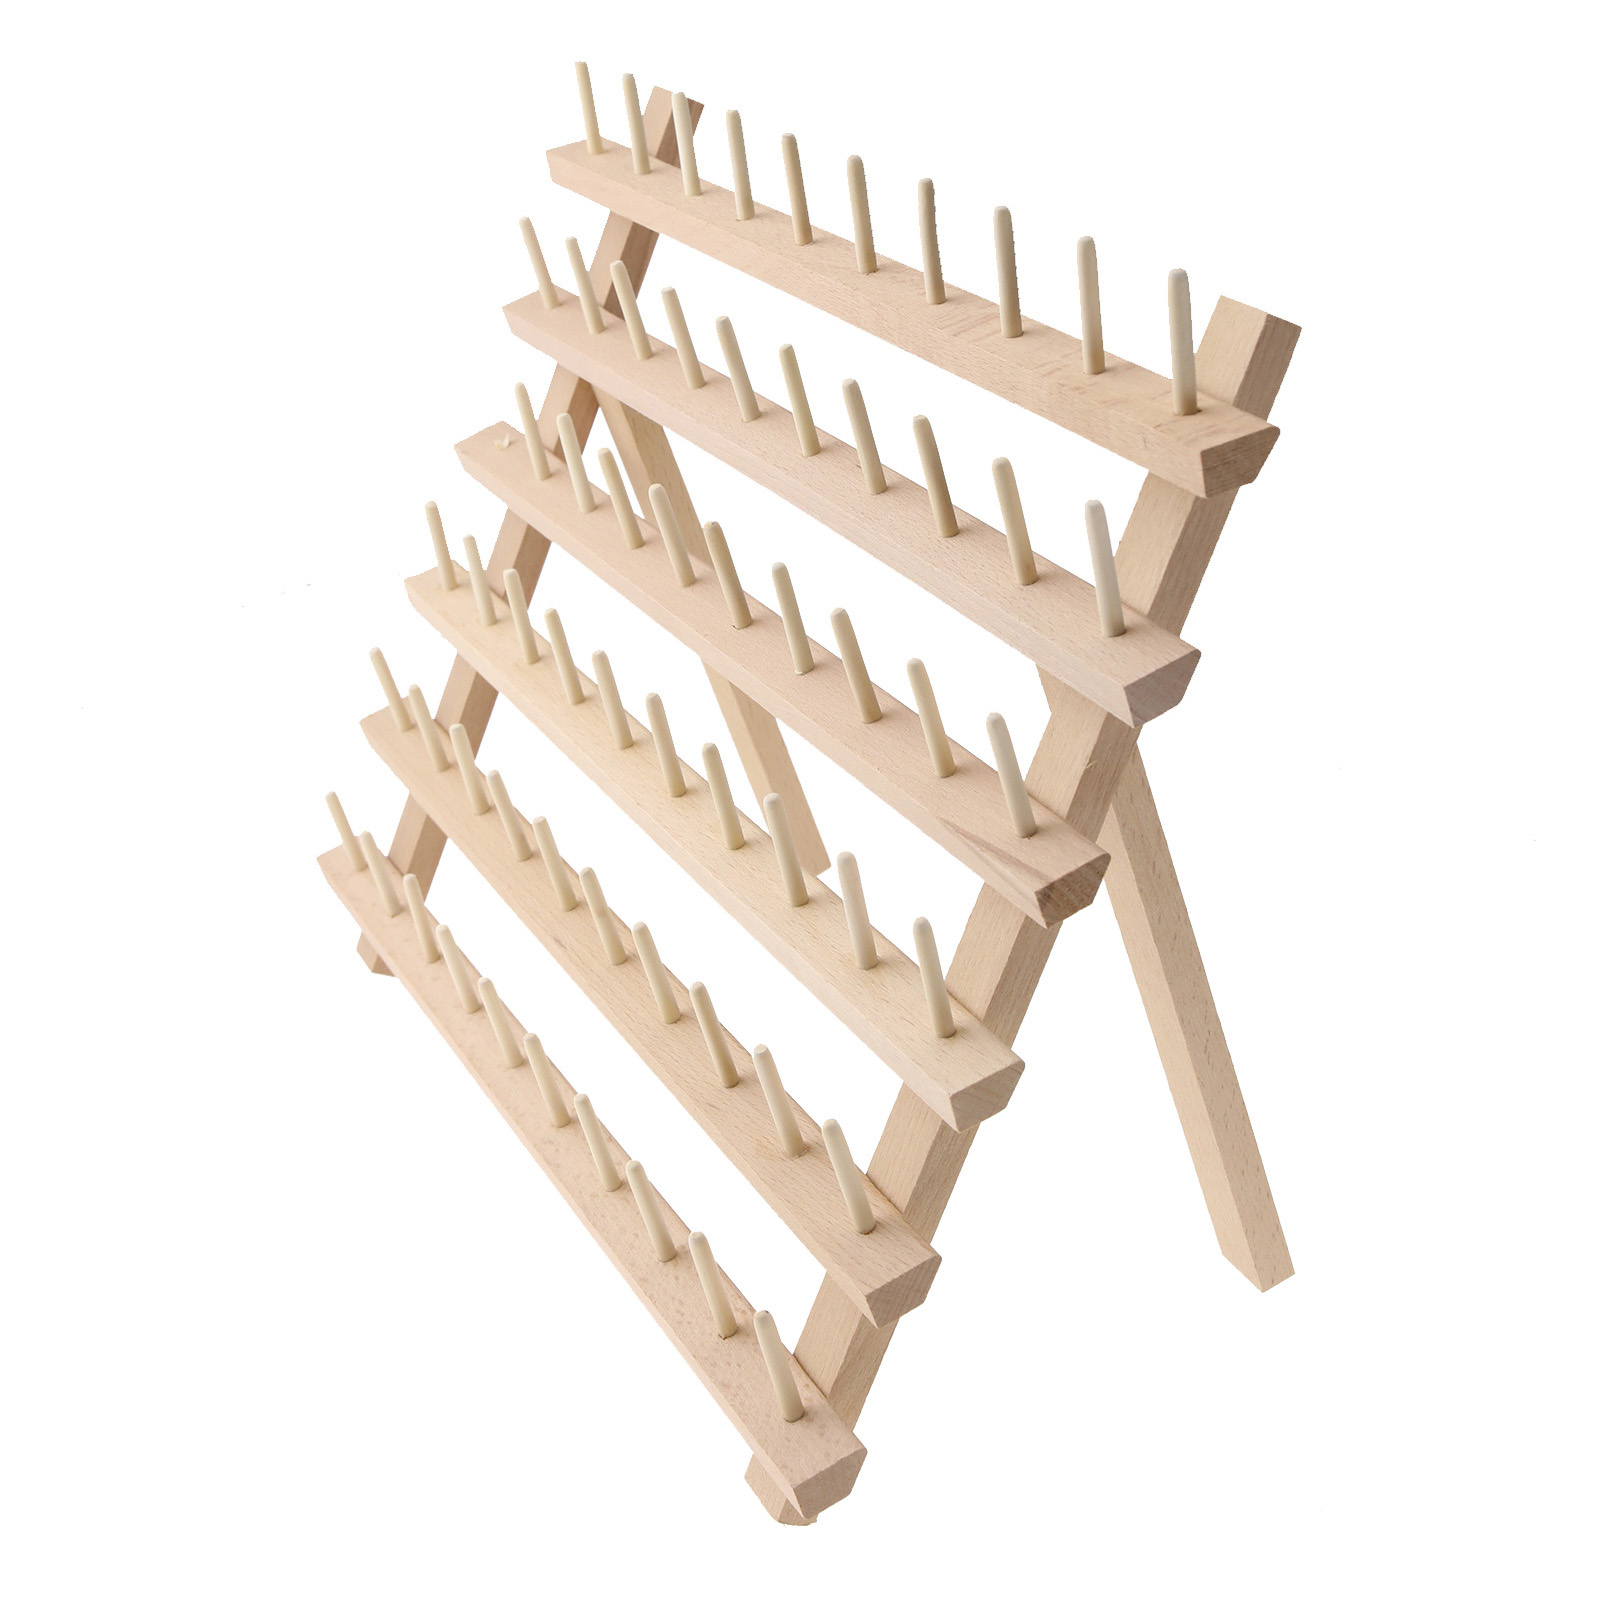 60 Spool Embroidery Wood Sewing Thread Rack Stand